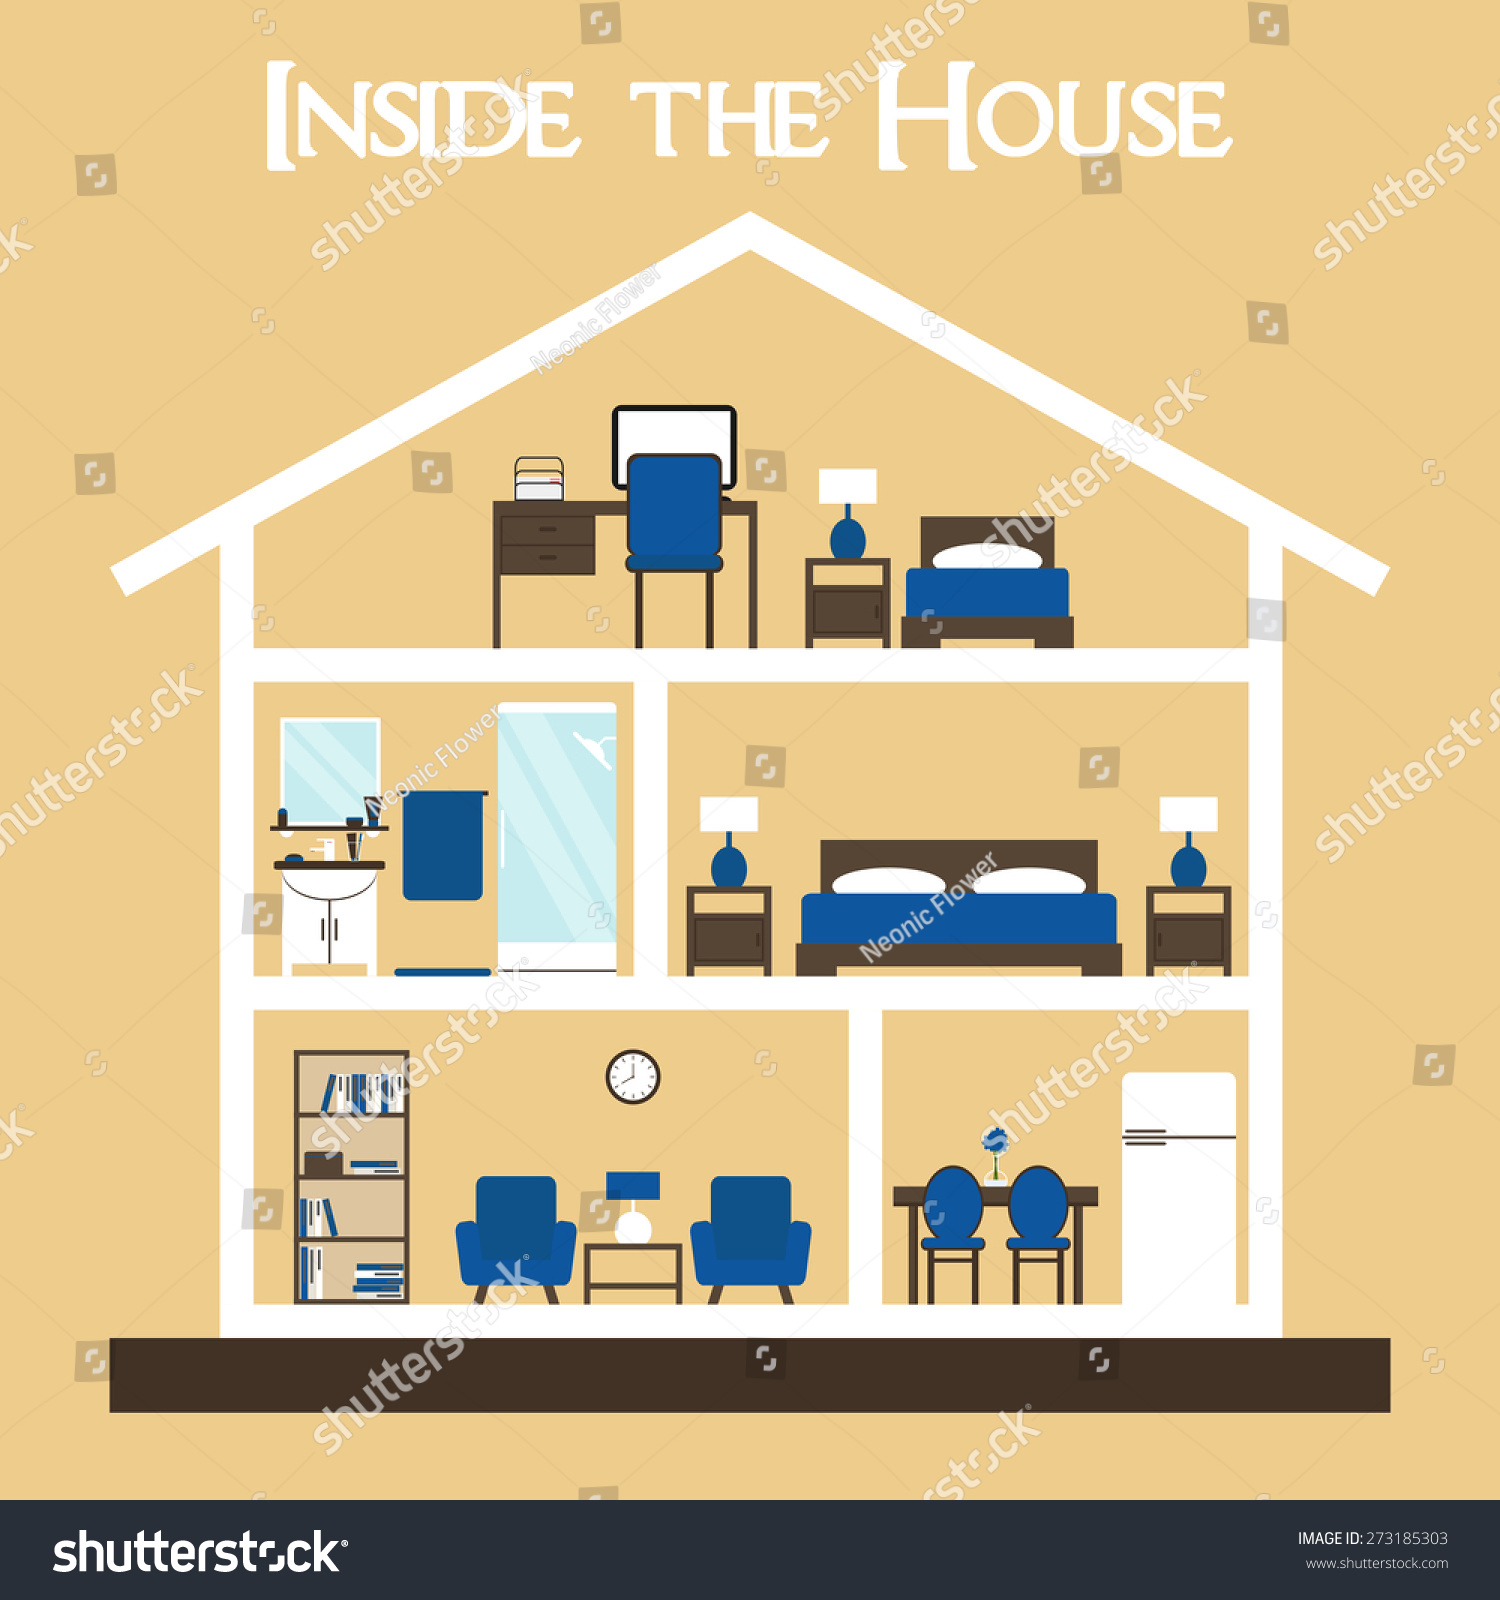 House house interior inside the house house cross cute for House inside images